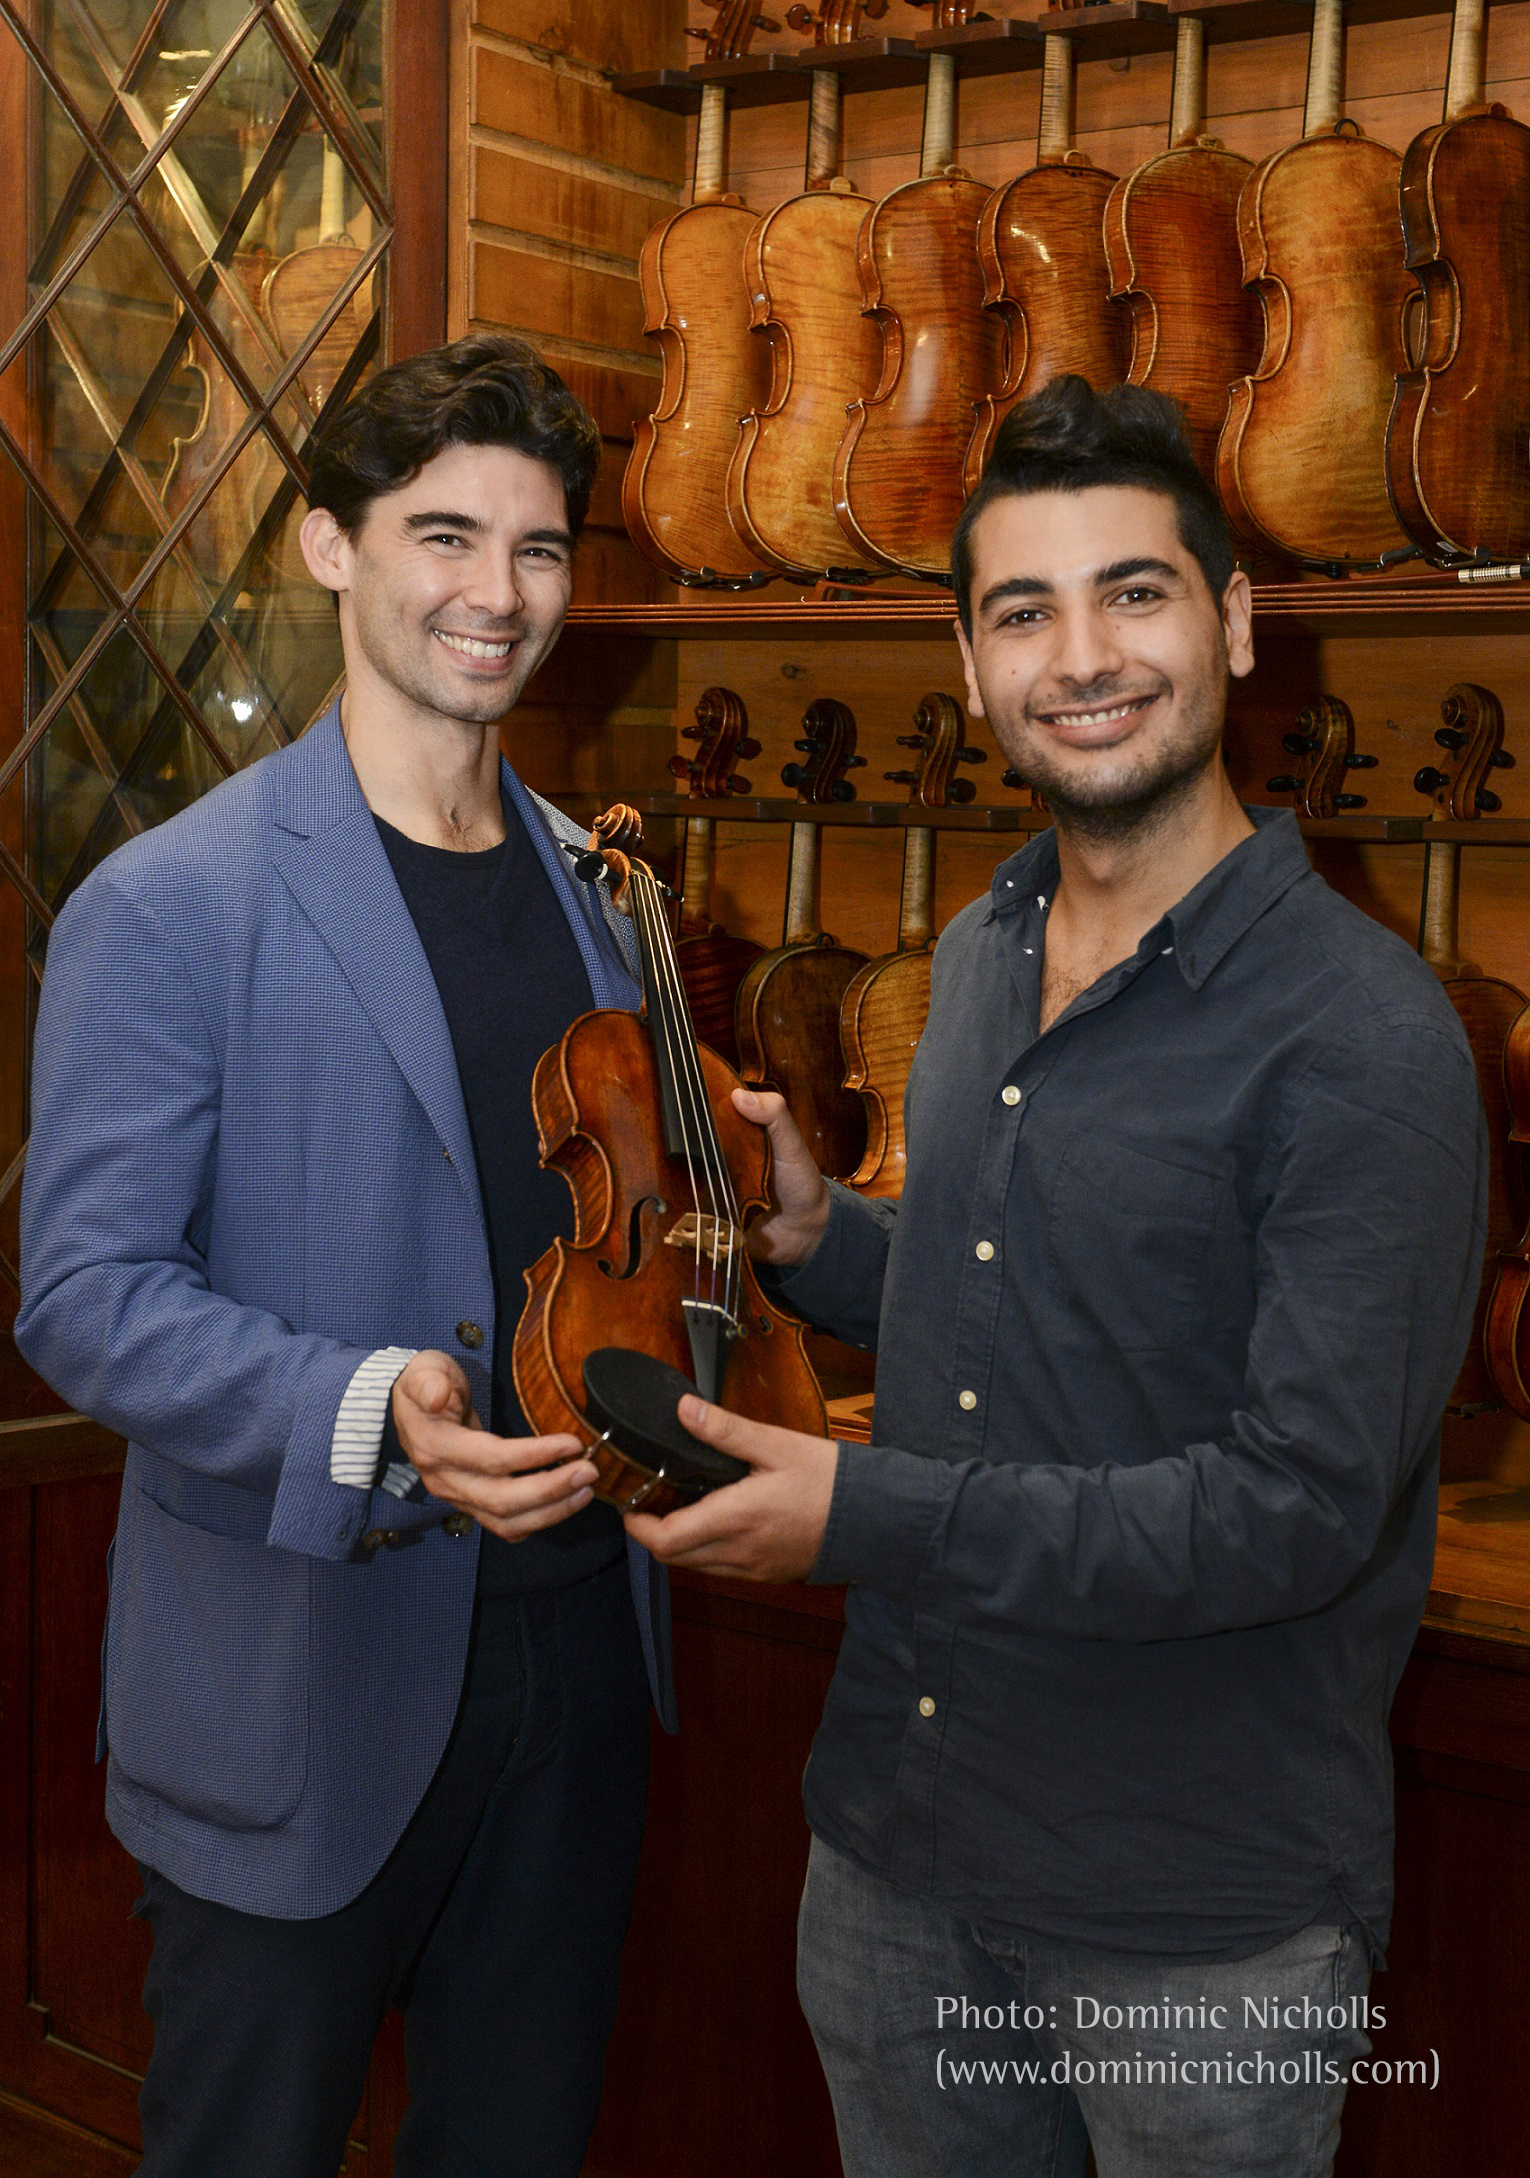 Florian Leonhard Fine Violins sales manager Thomas Wei presents the 1690 'Stephens' Stradivarius violin to Rami